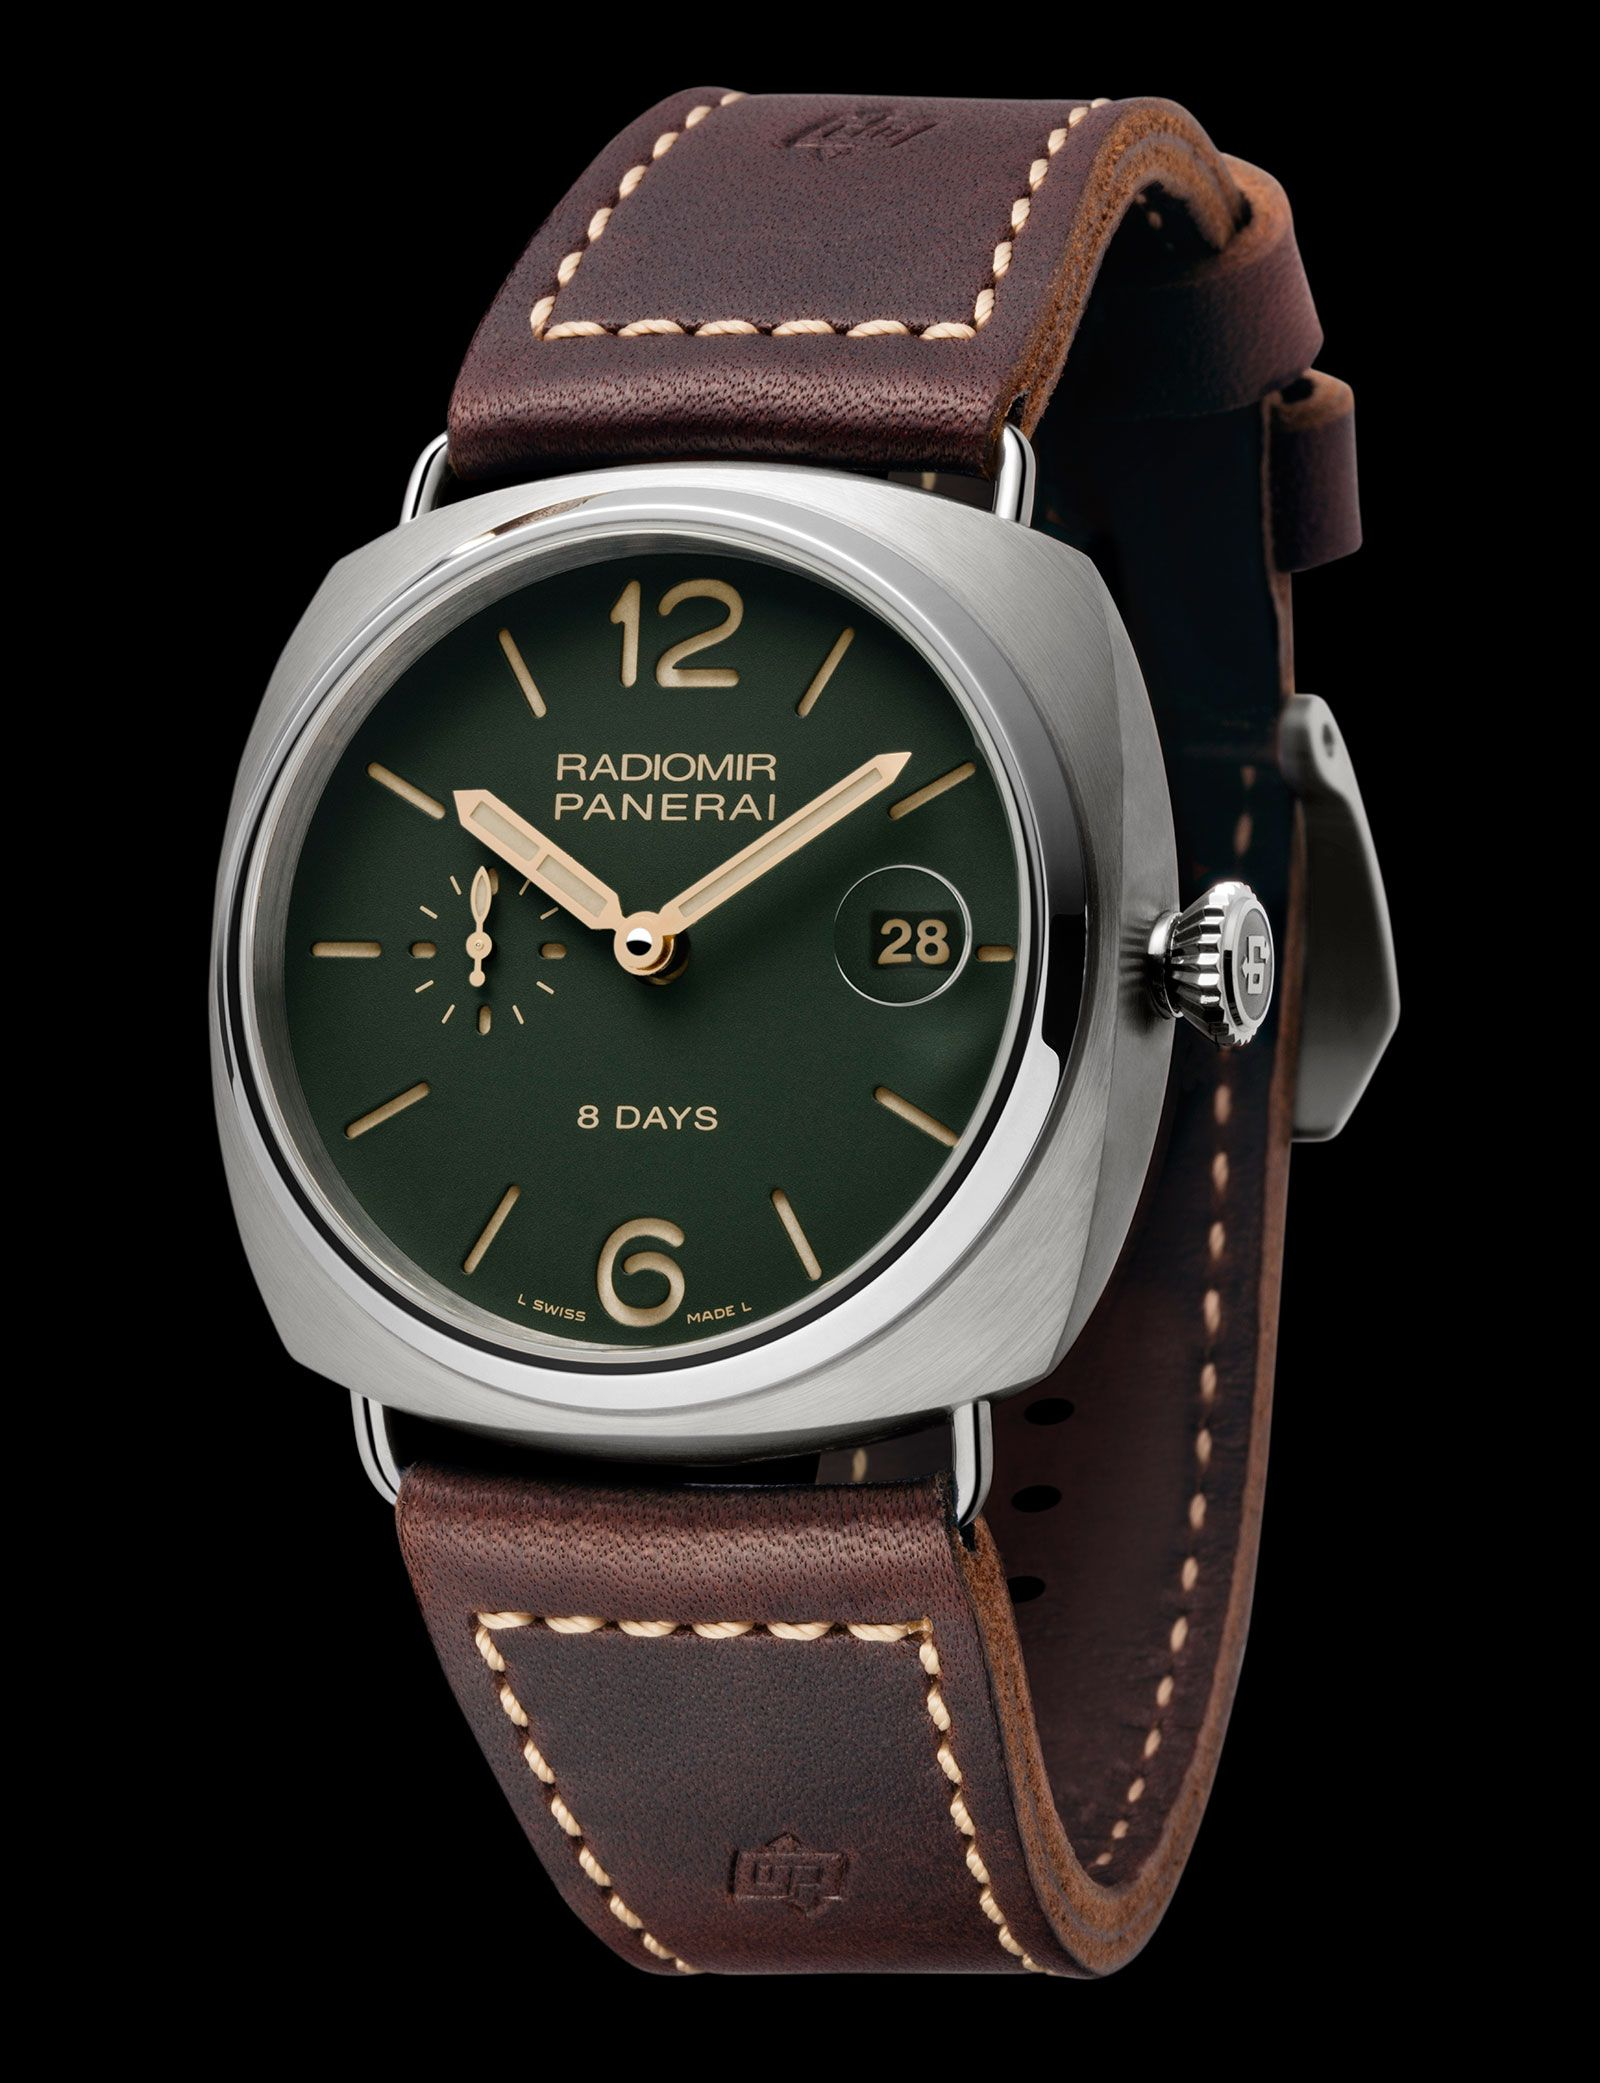 image panerai zpanerai watches california enlarge to pam click edition special radiomir above